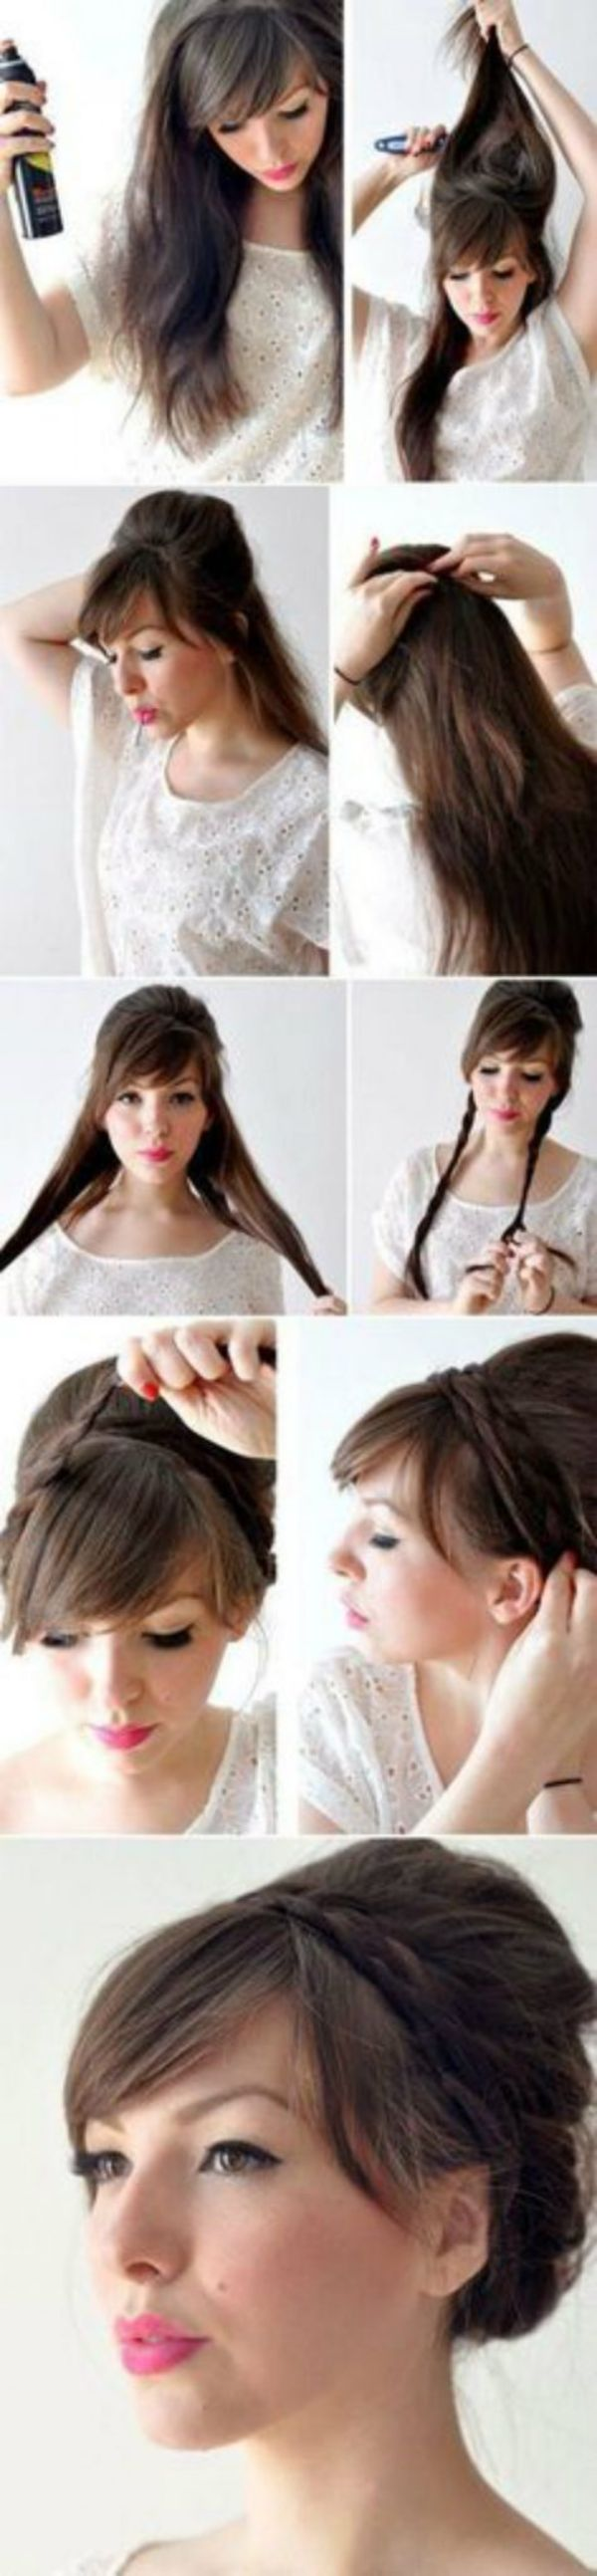 Office Hairstyles: Decorate Strict Braid With Pigtails Simple Hairstyles For A Strict Dress Code